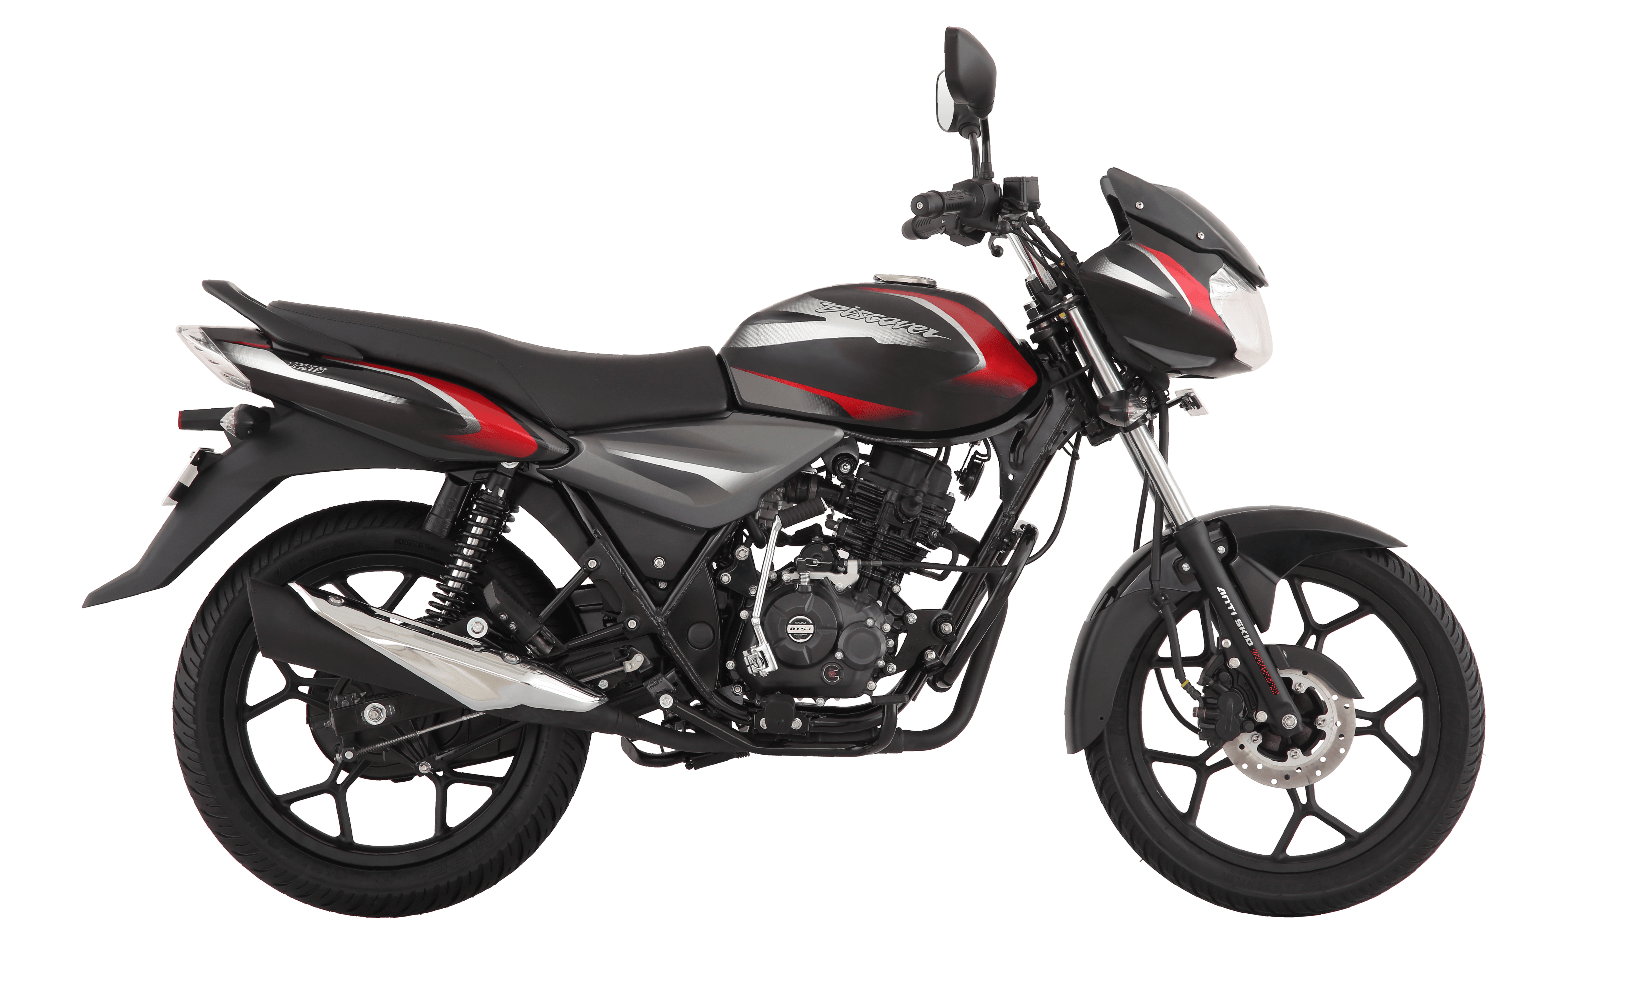 Black and red color bajaj discover 110cc disk motorcycle with dtsi engine side view